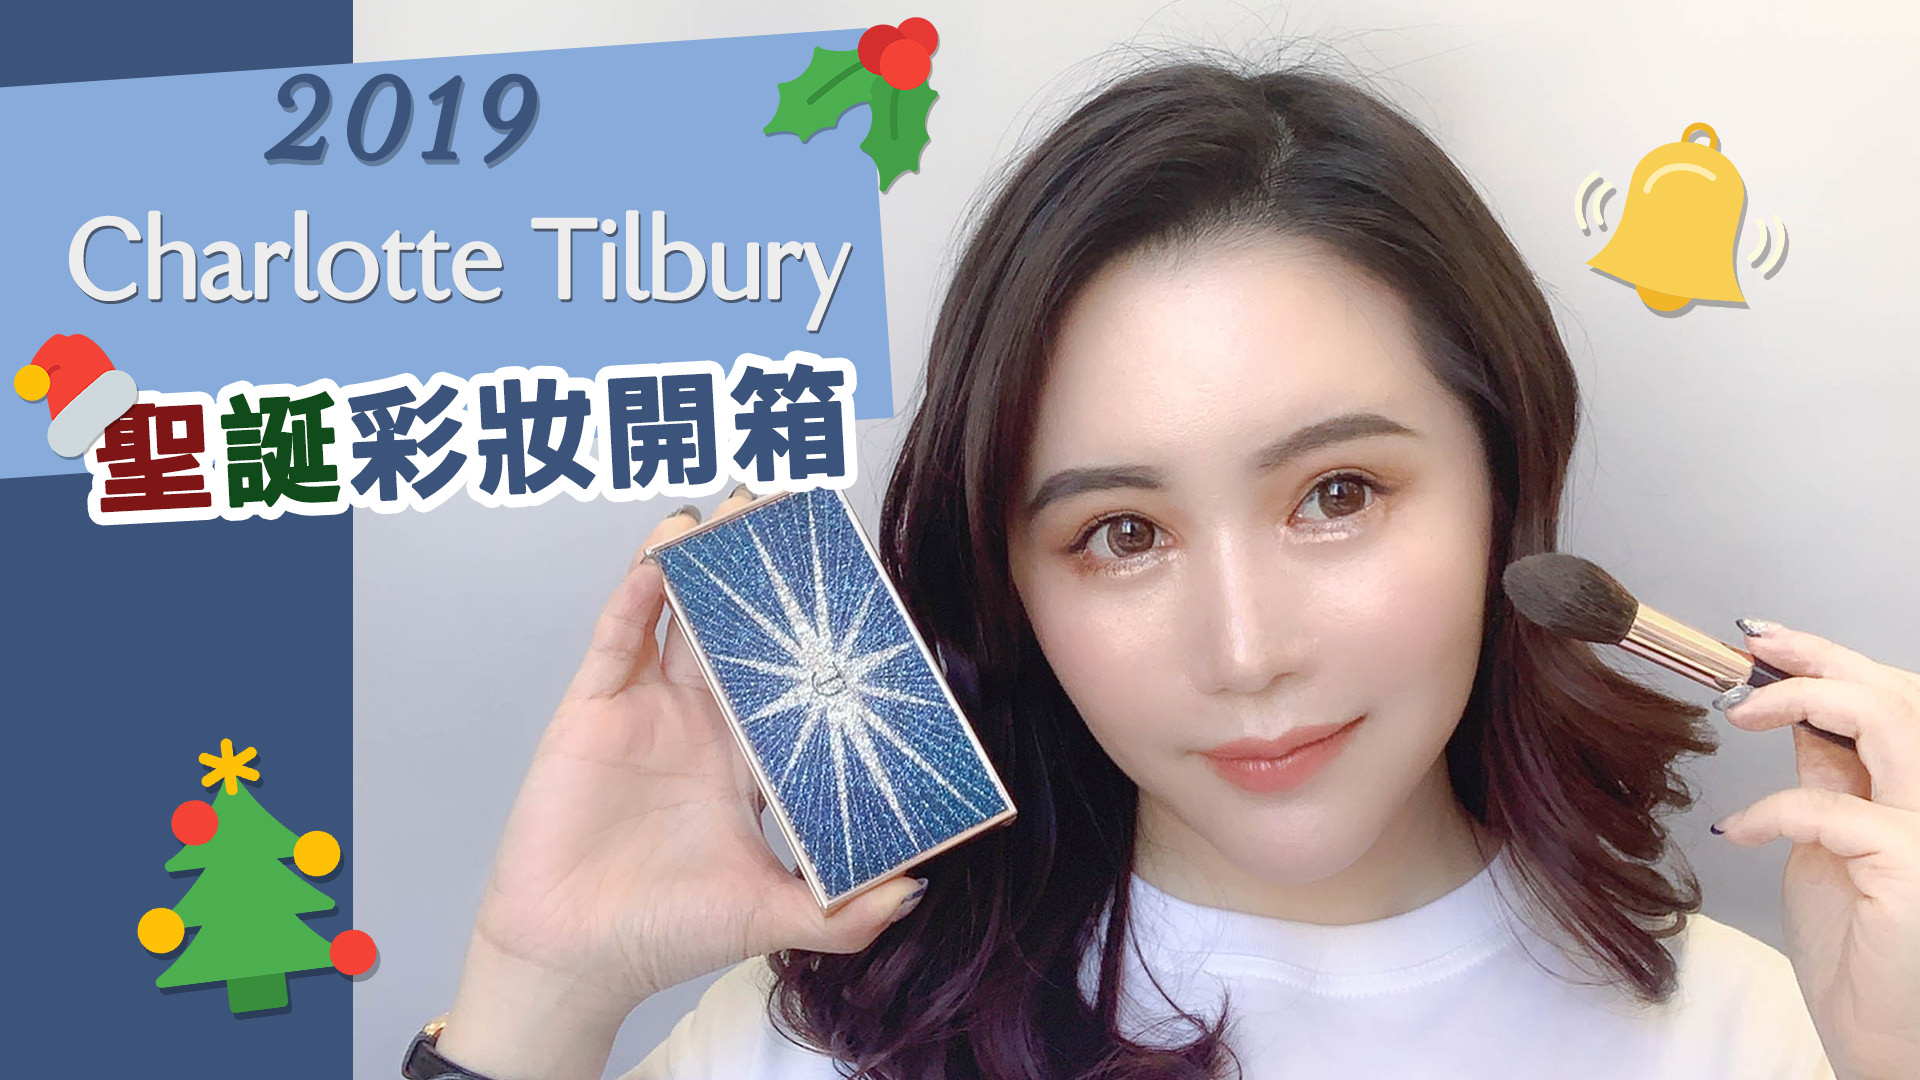 [YOUTUBE] 2019 Charlotte Tilbury 聖誕彩妝開箱!